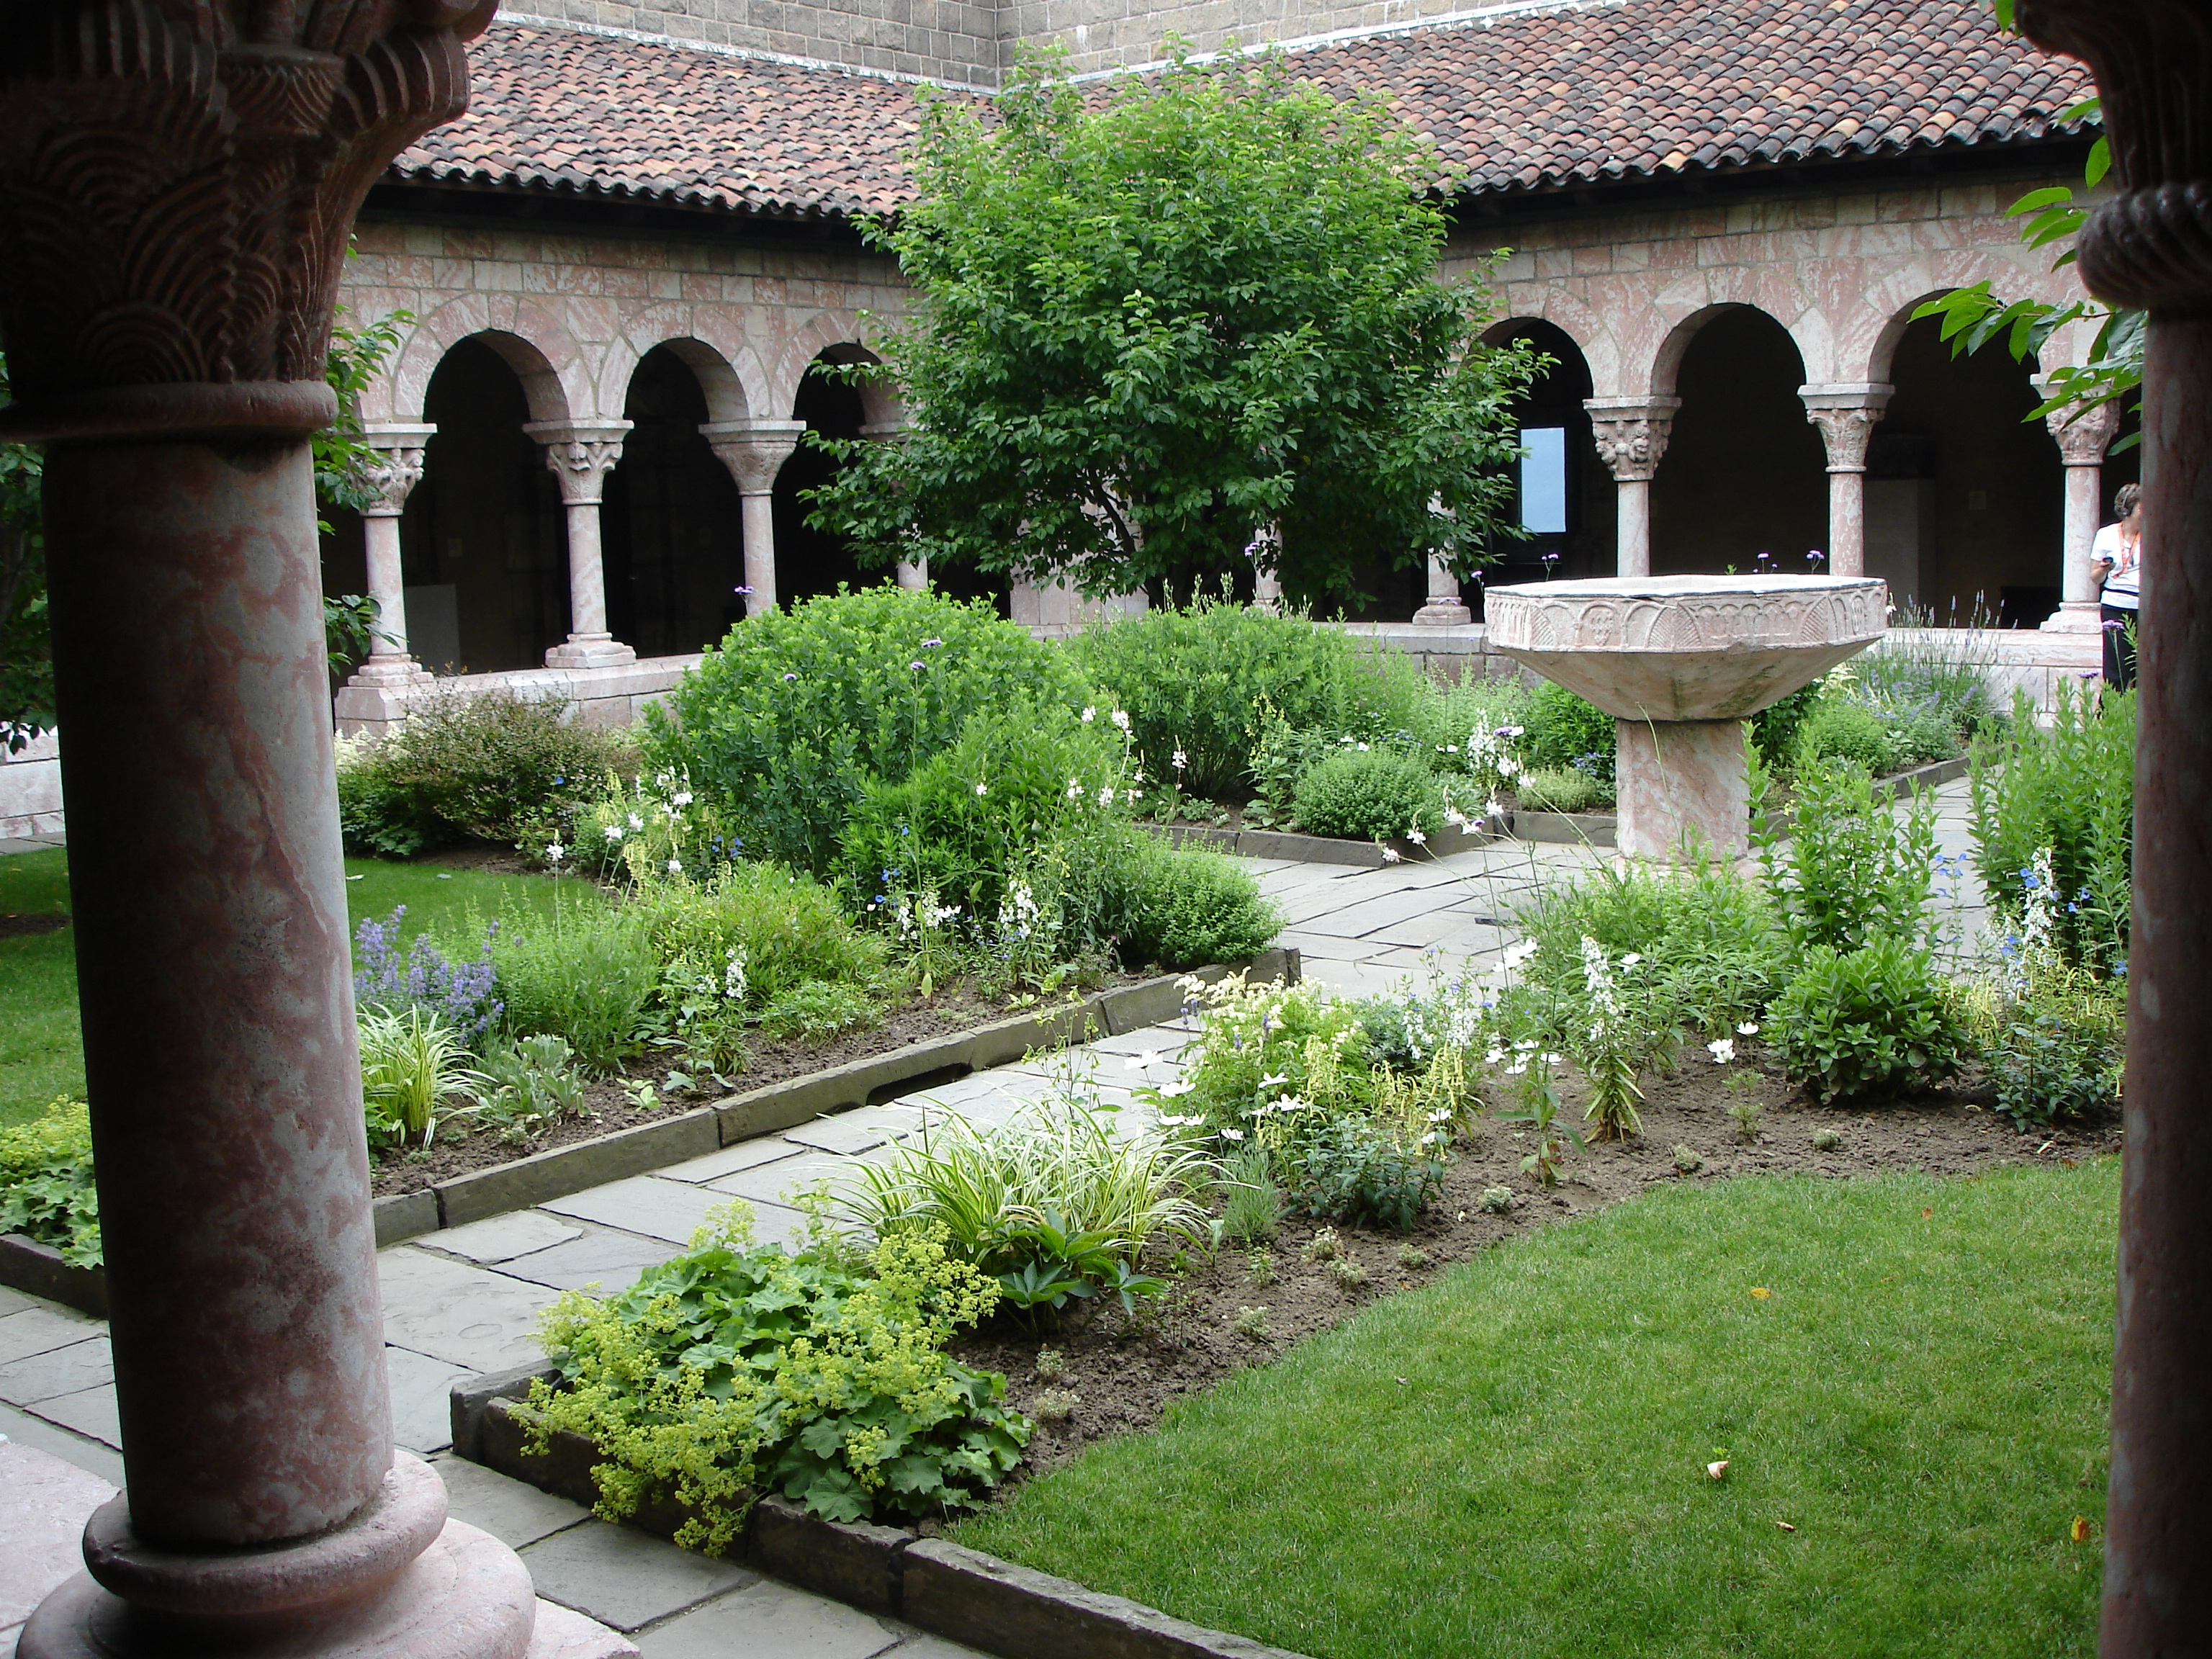 The Cloisters Museum and Gardens in Northern Manhattan ... | 3072 x 2304 jpeg 3051kB